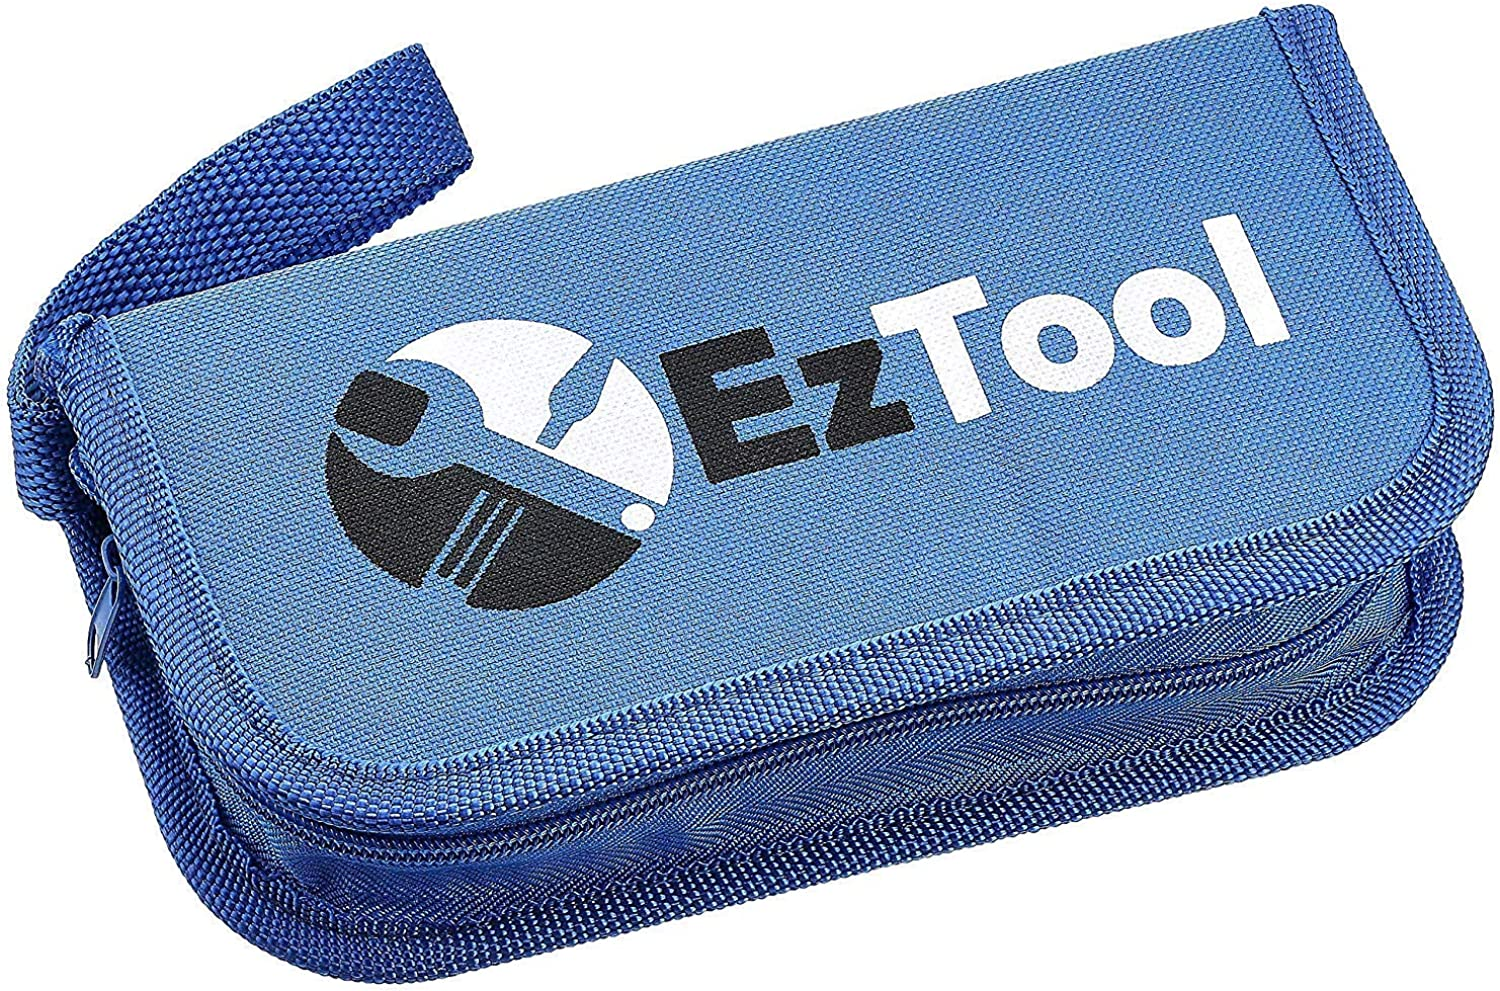 EZTool Watch Repair Kit with 16 Tools and 41-Page Illustrated Maintenance & Service Manual: Watches